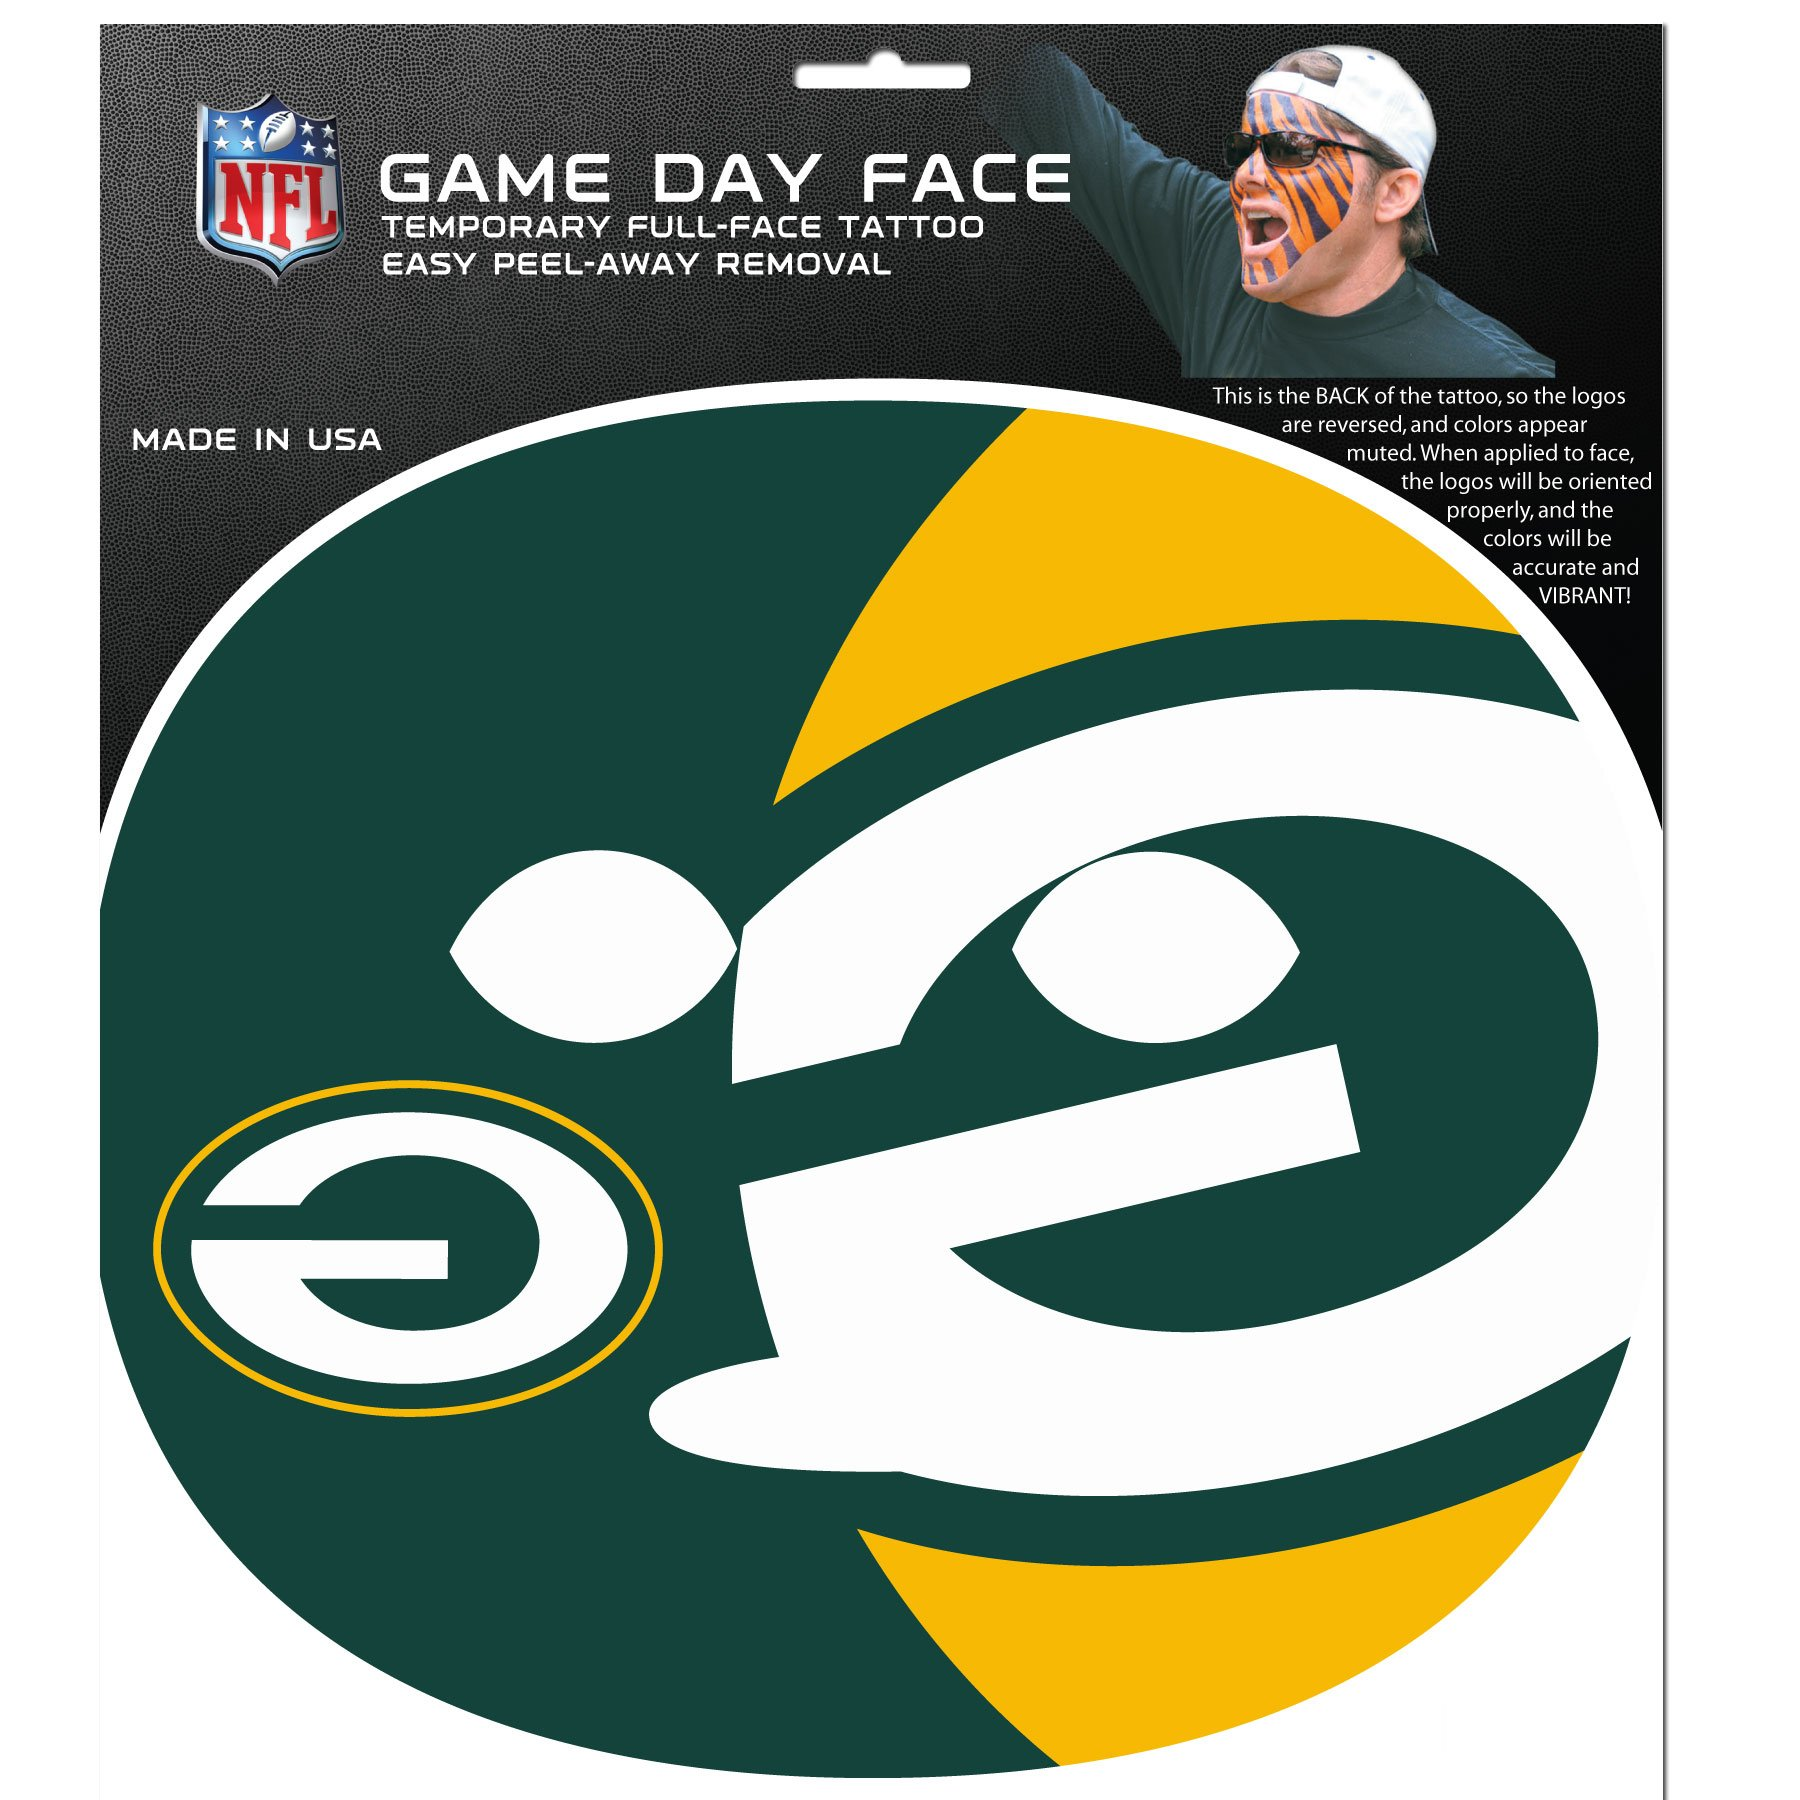 NFL Green Bay Packers Game Day Face Decal